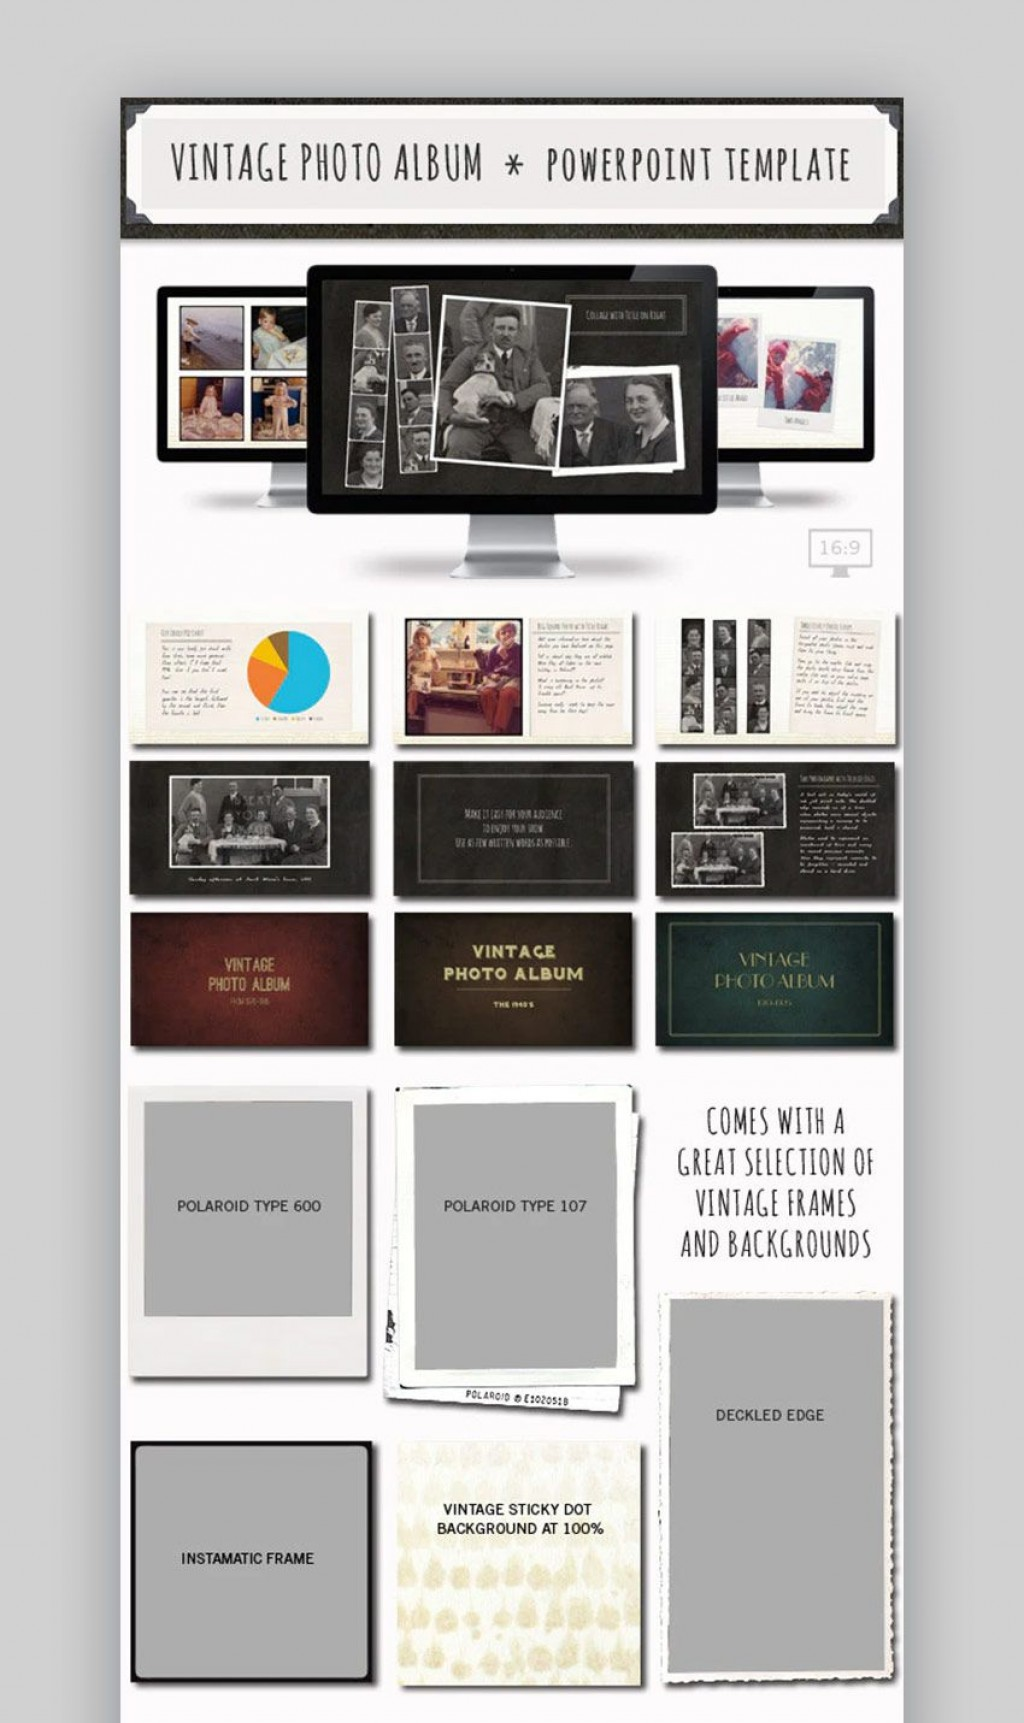 000 Astounding In Loving Memory Powerpoint Template Free Download Sample Large